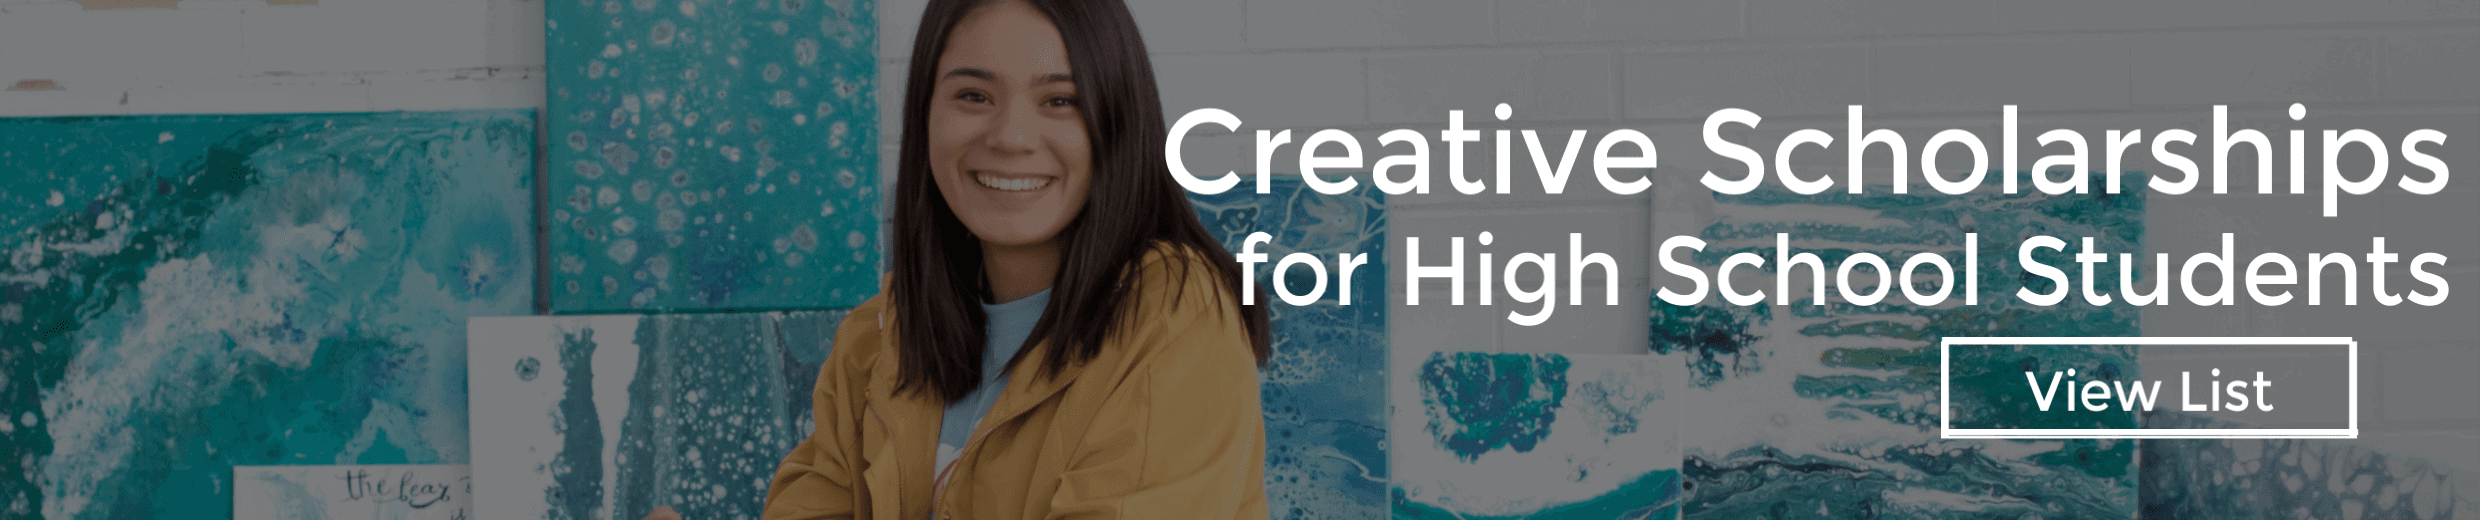 Scholarships for Creative High School Students Aspiring to Attend College